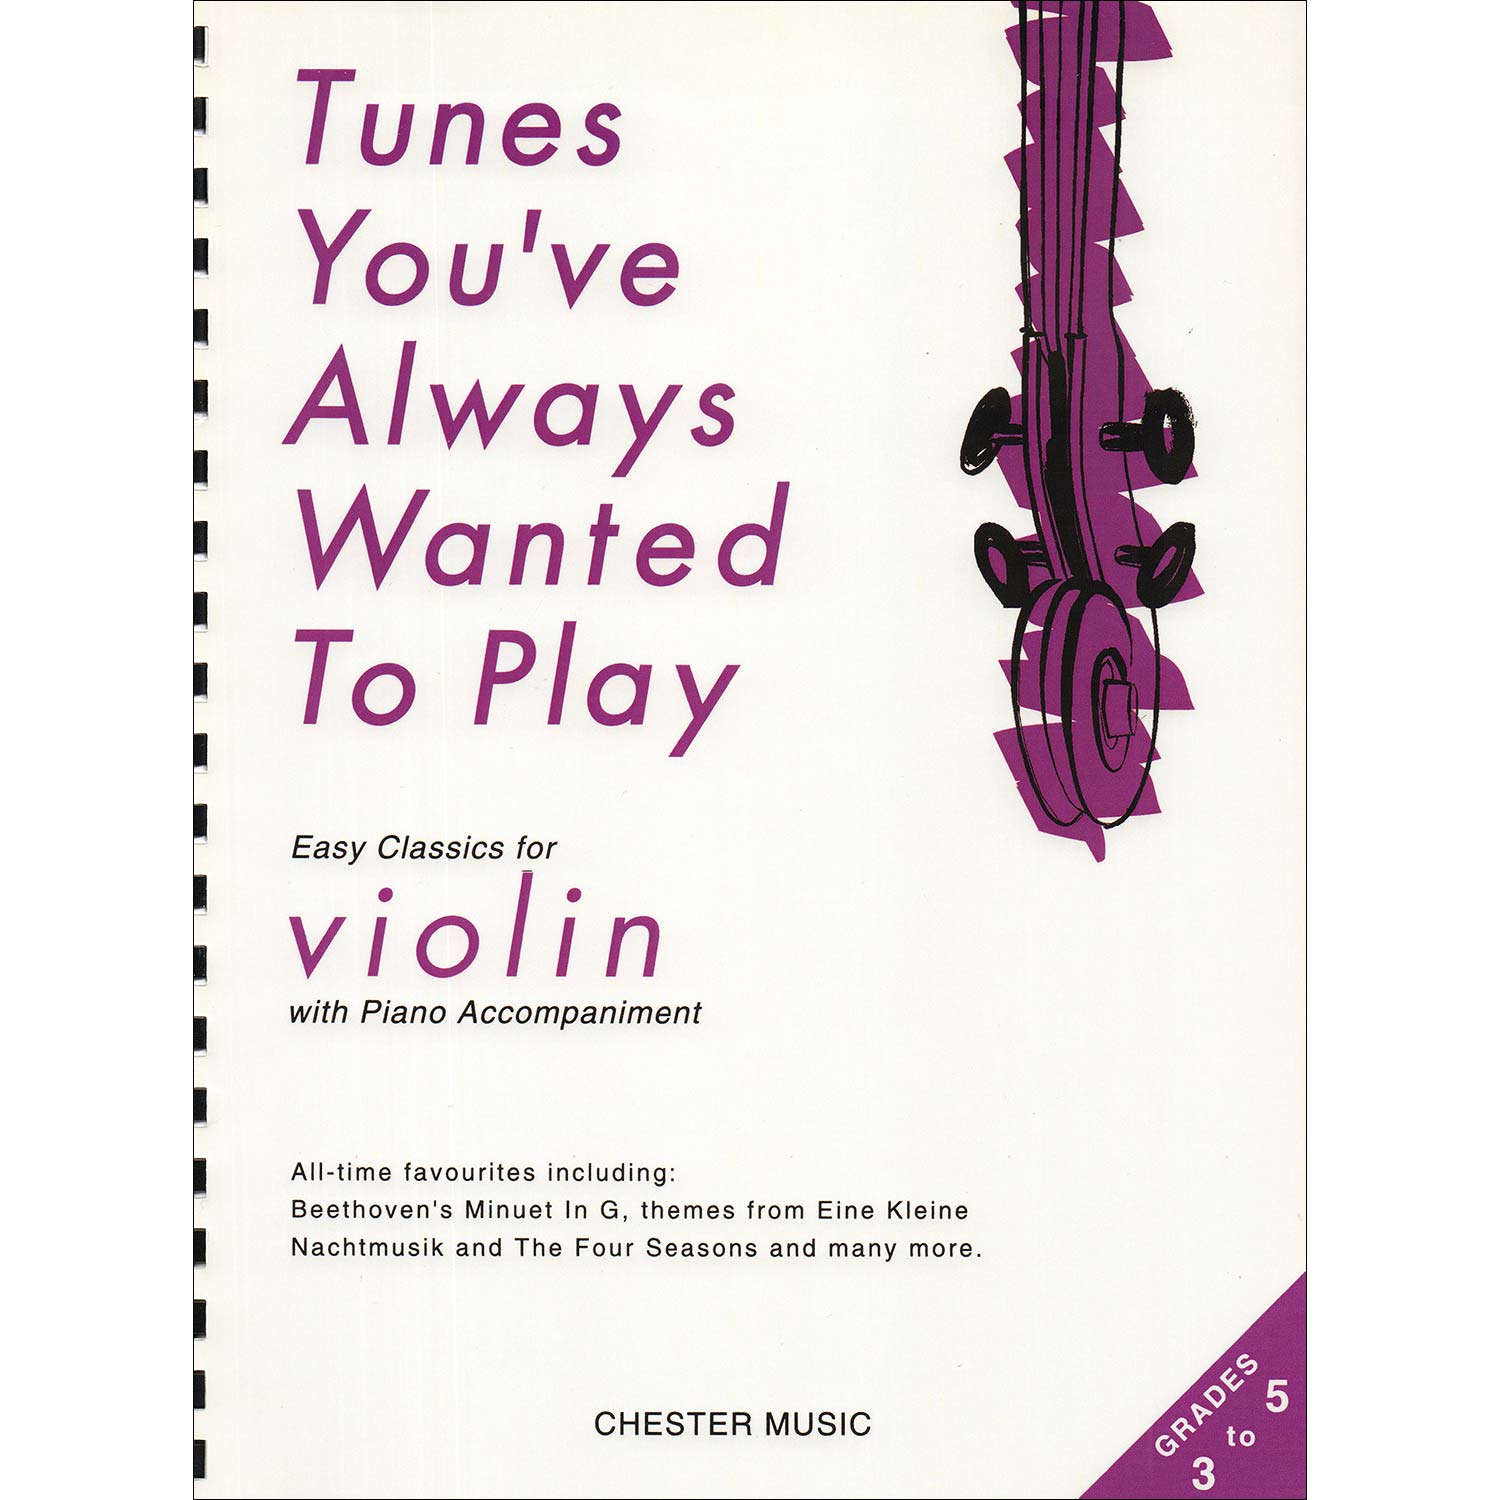 Tunes You've Always Wanted To Play, Violin And Piano